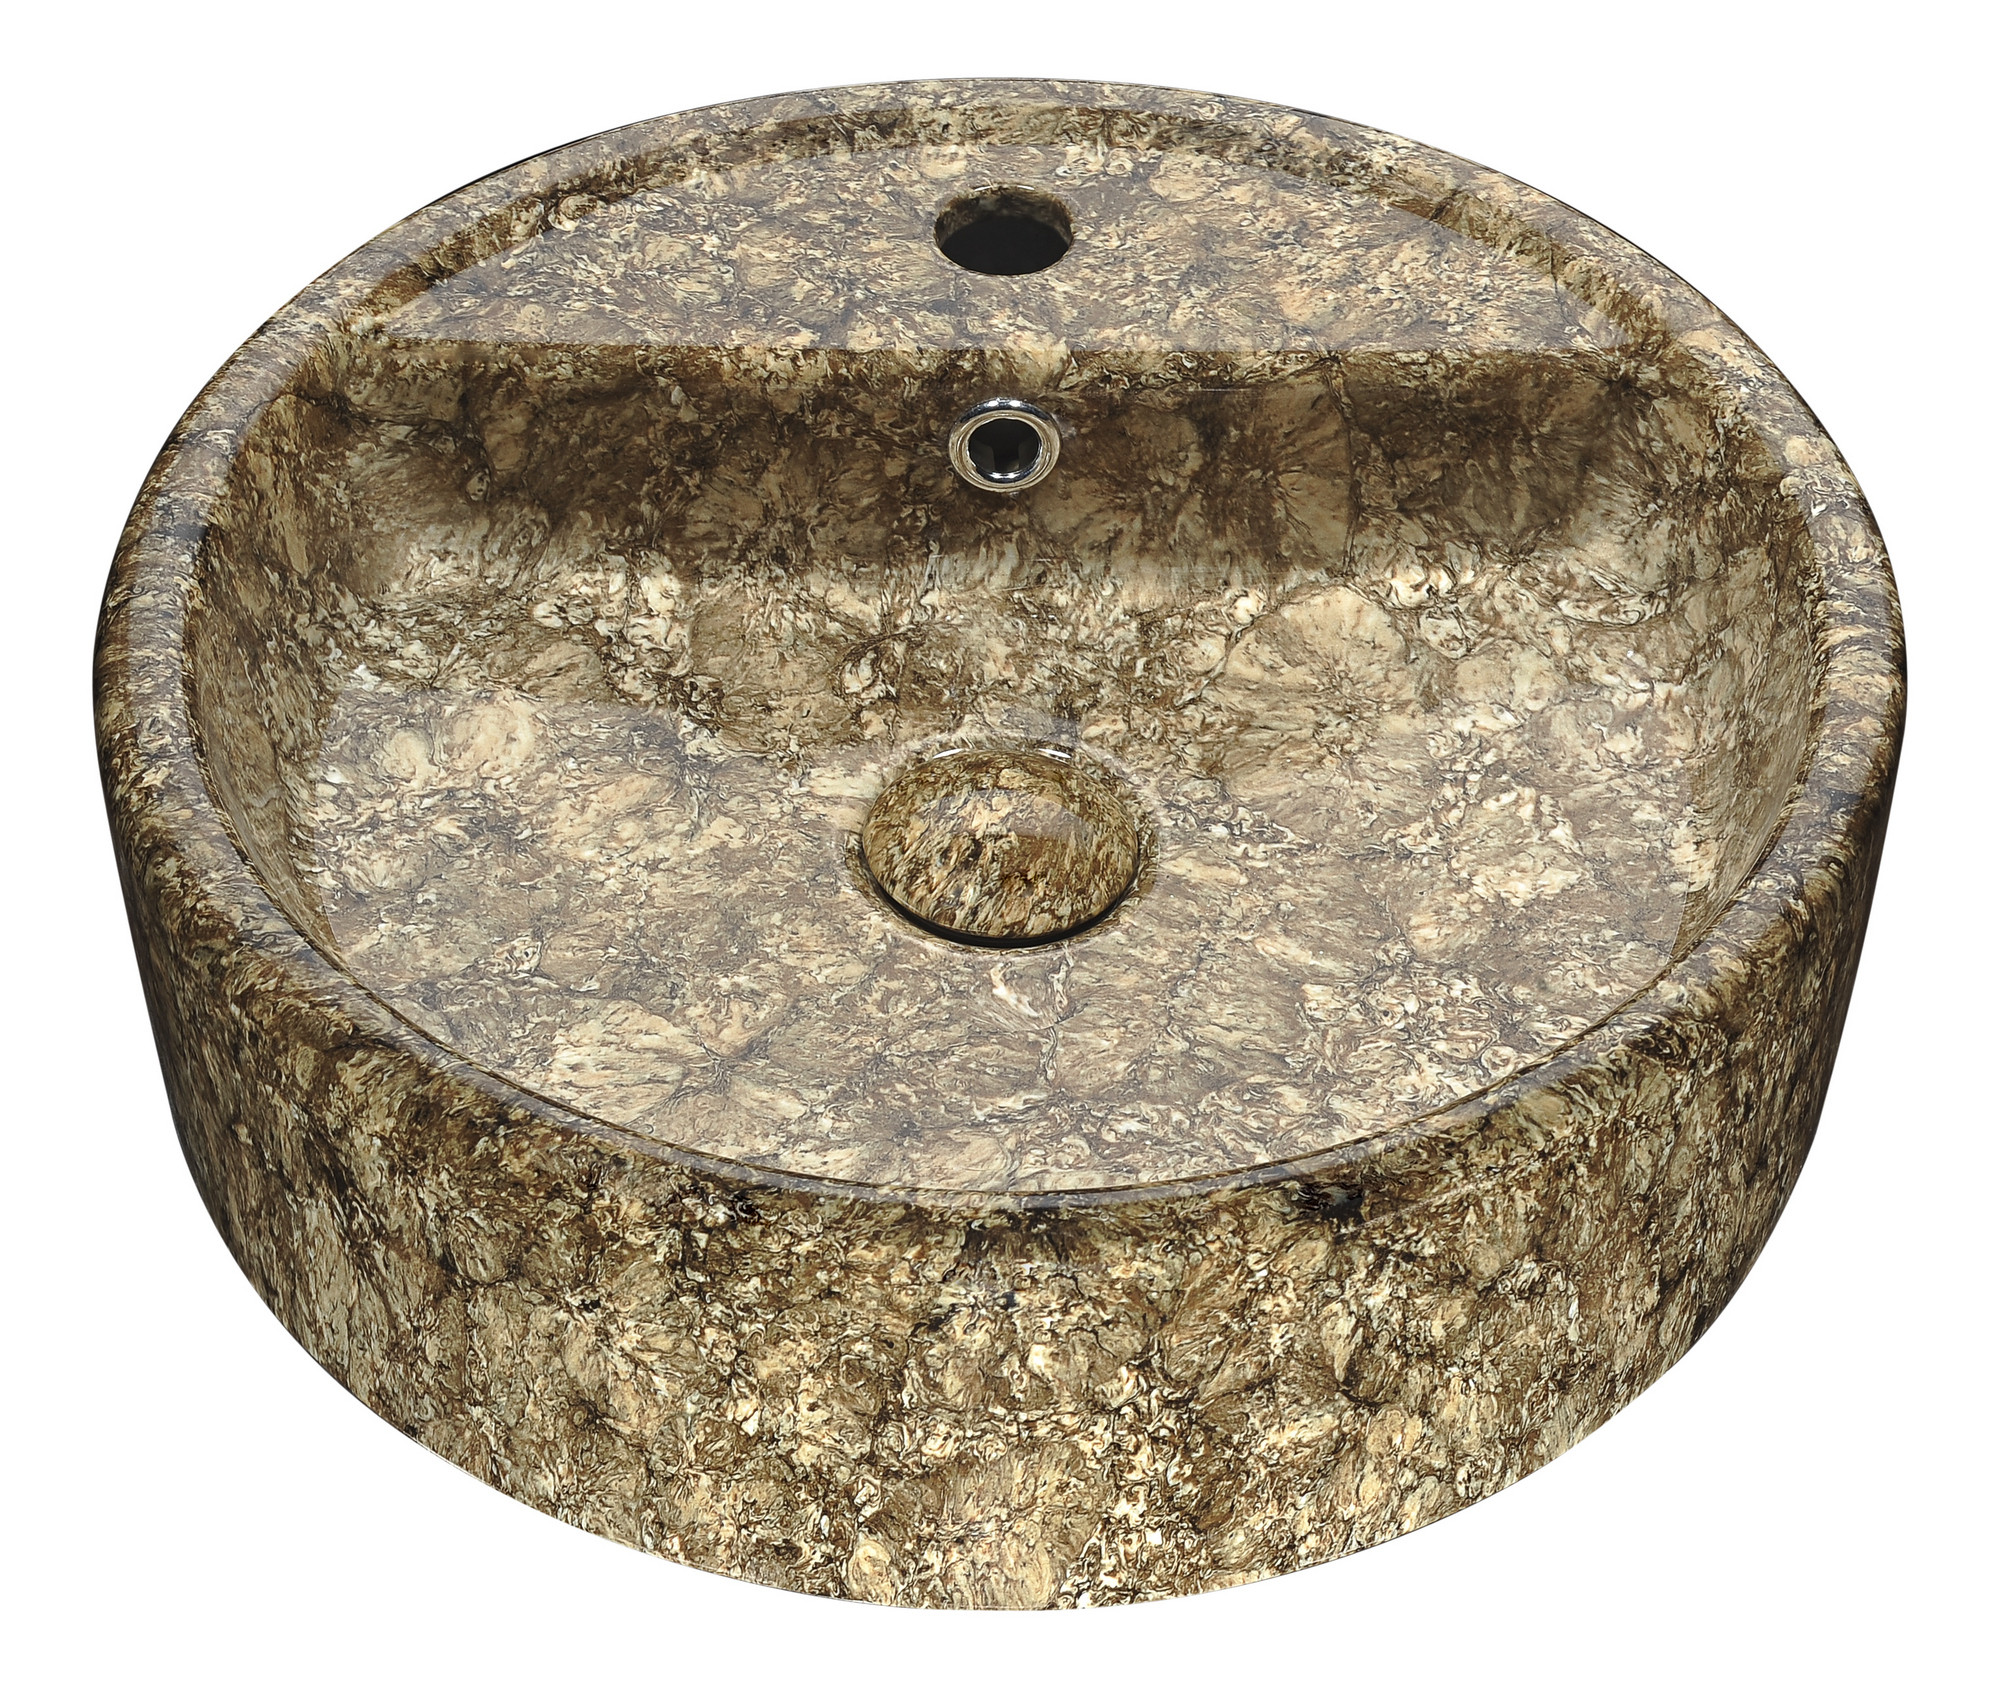 ANZZI LS-AZ257 Rhapsody Series Ceramic Vessel Sink In Neolith Marble Finish